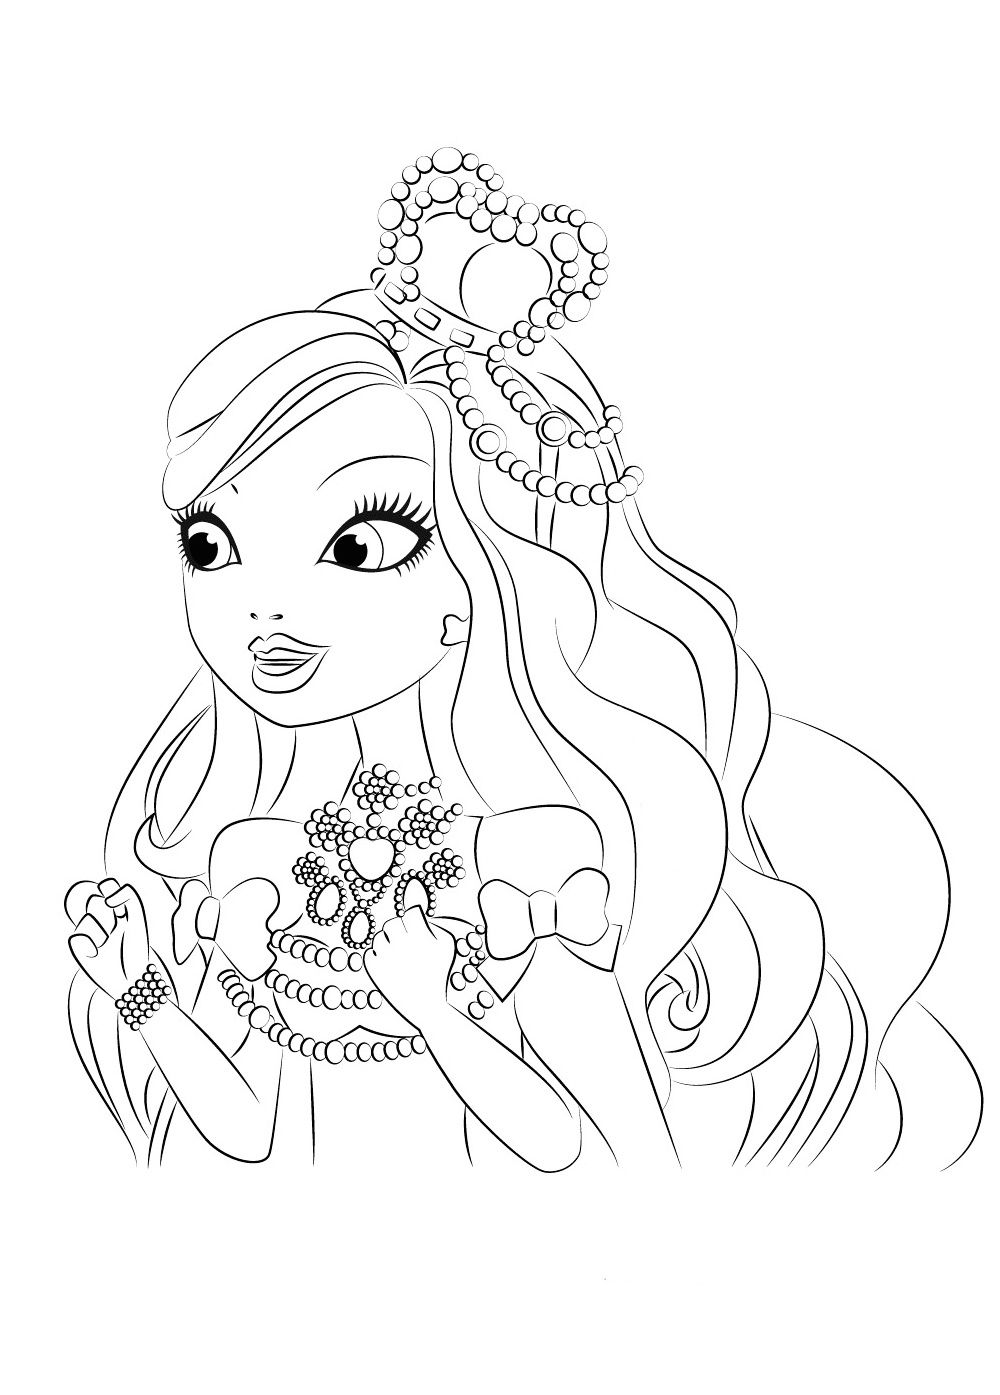 Apple white - daughter of Snow white, coloring pages for kids, print ...